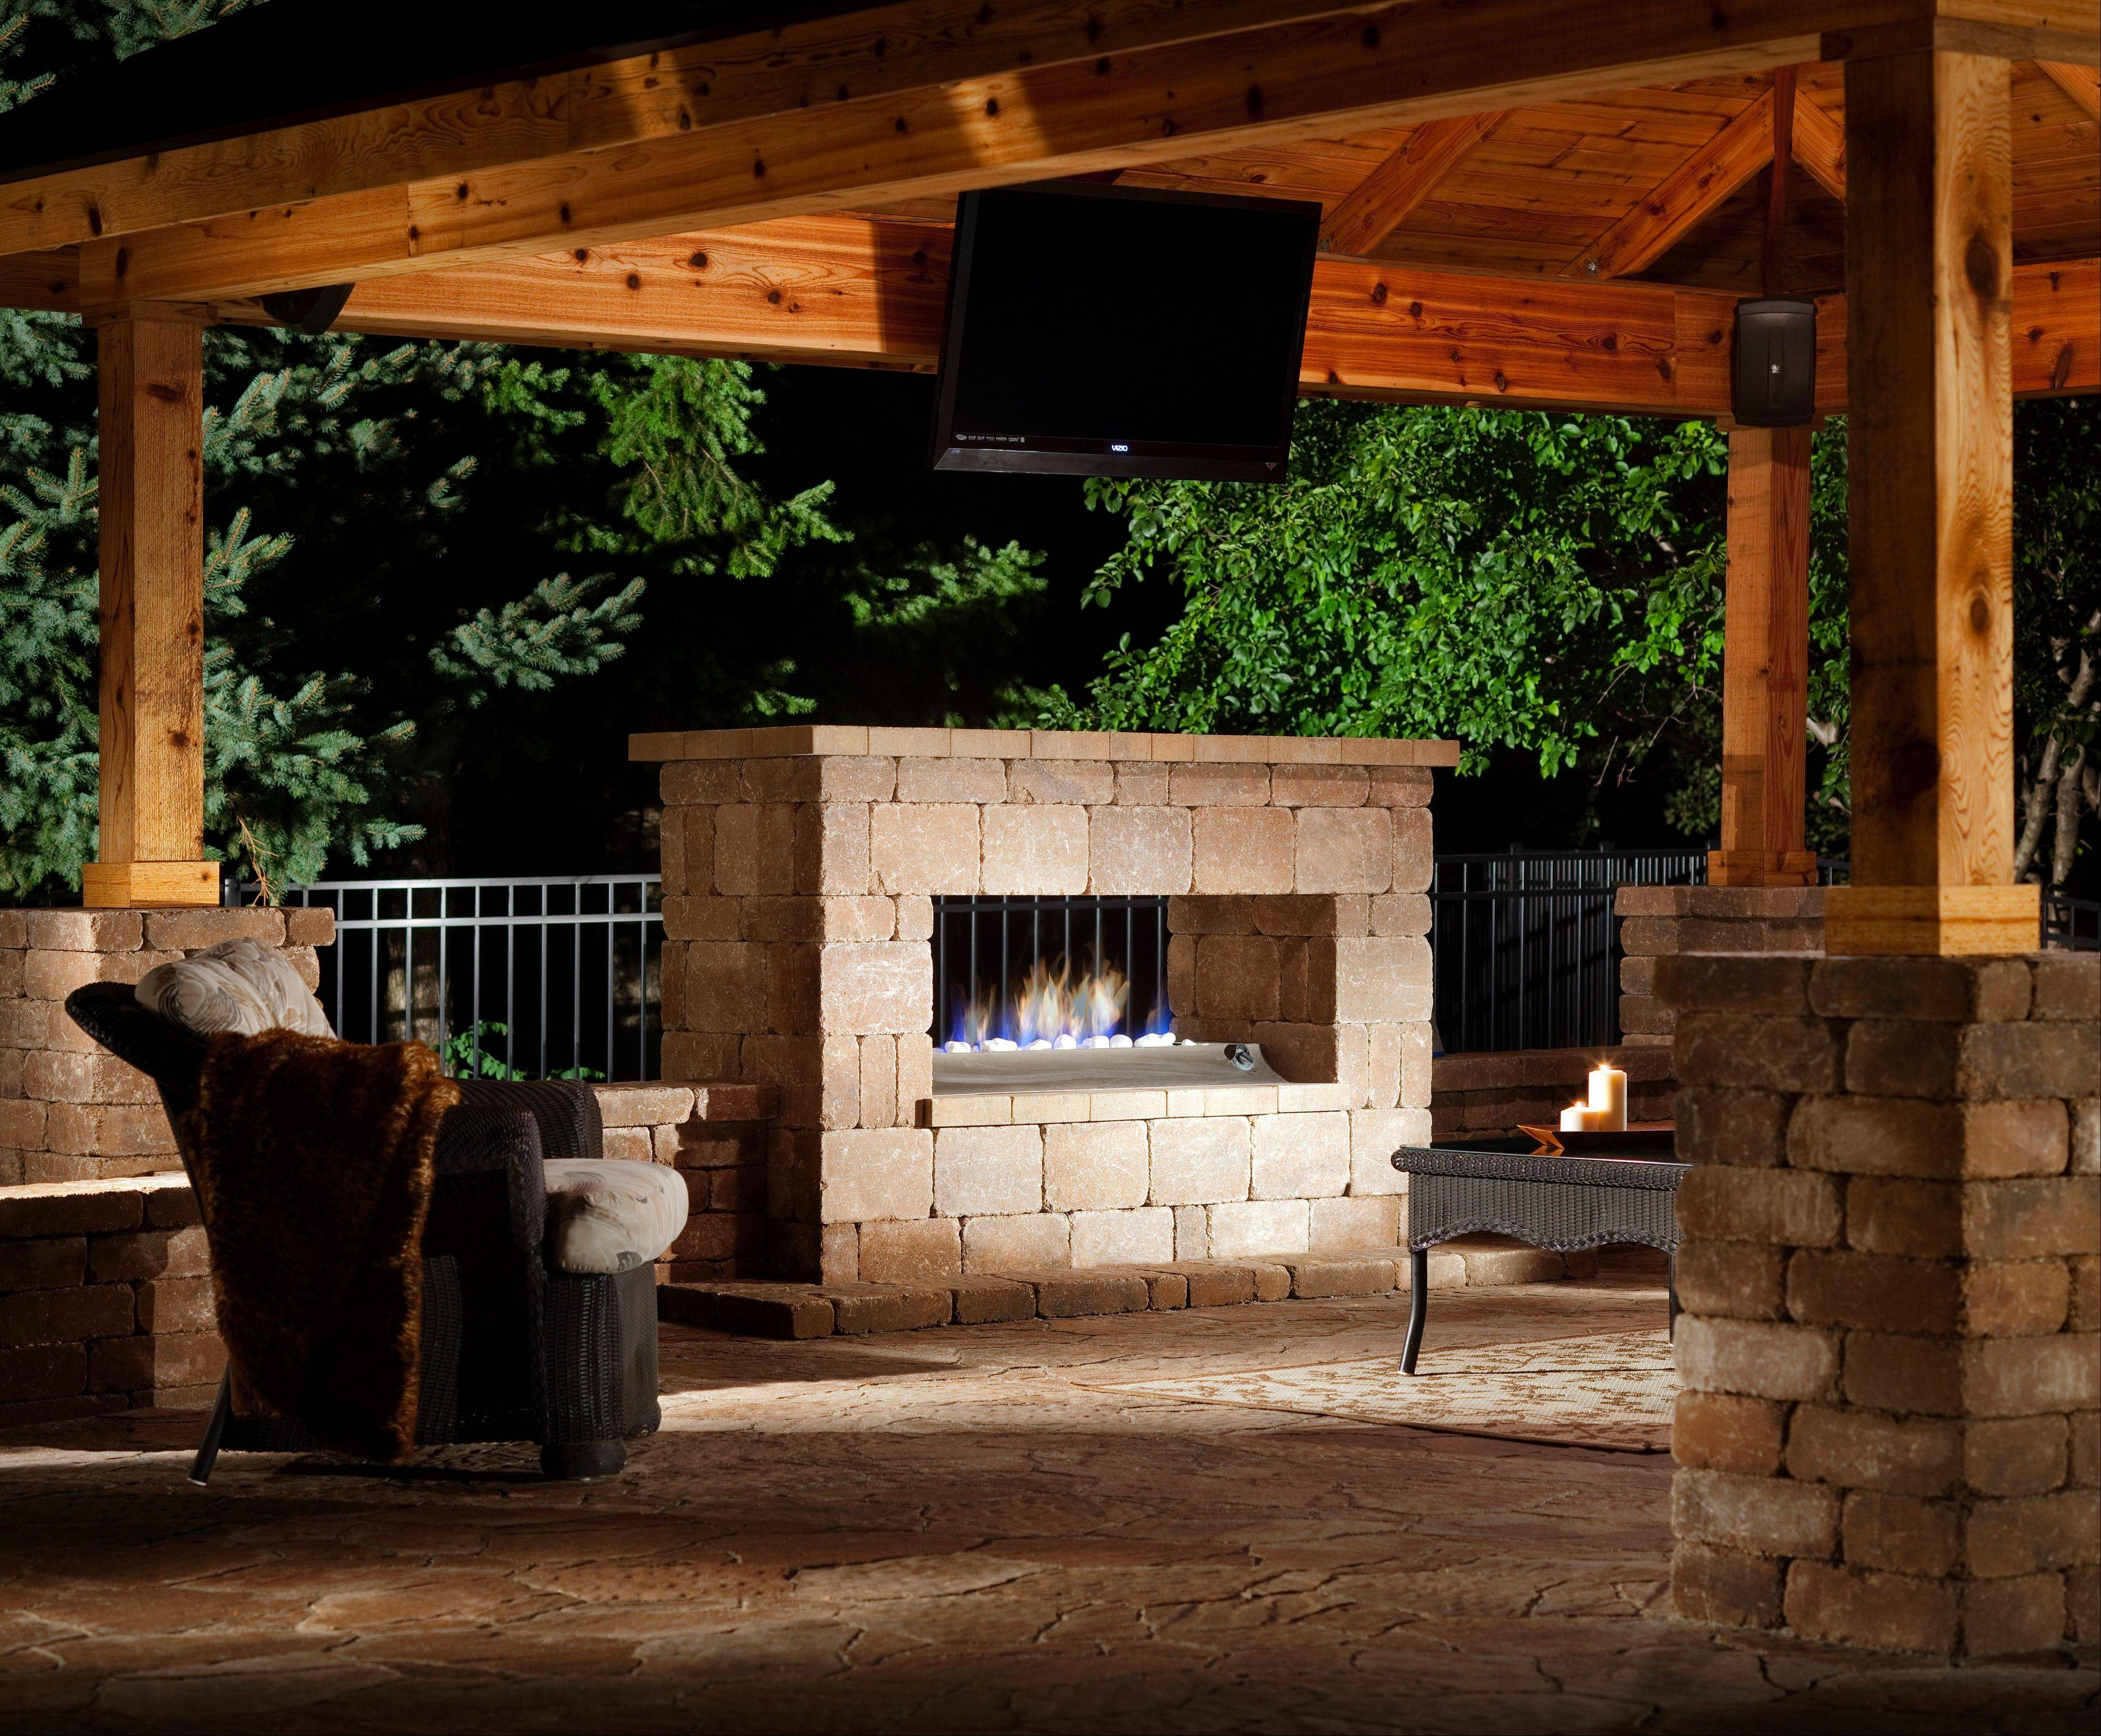 People living in the Midwest spend more on their outdoor living spaces, studies have found. This outdoor fireplace was made using paver blocks by Belgard Hardscapes.